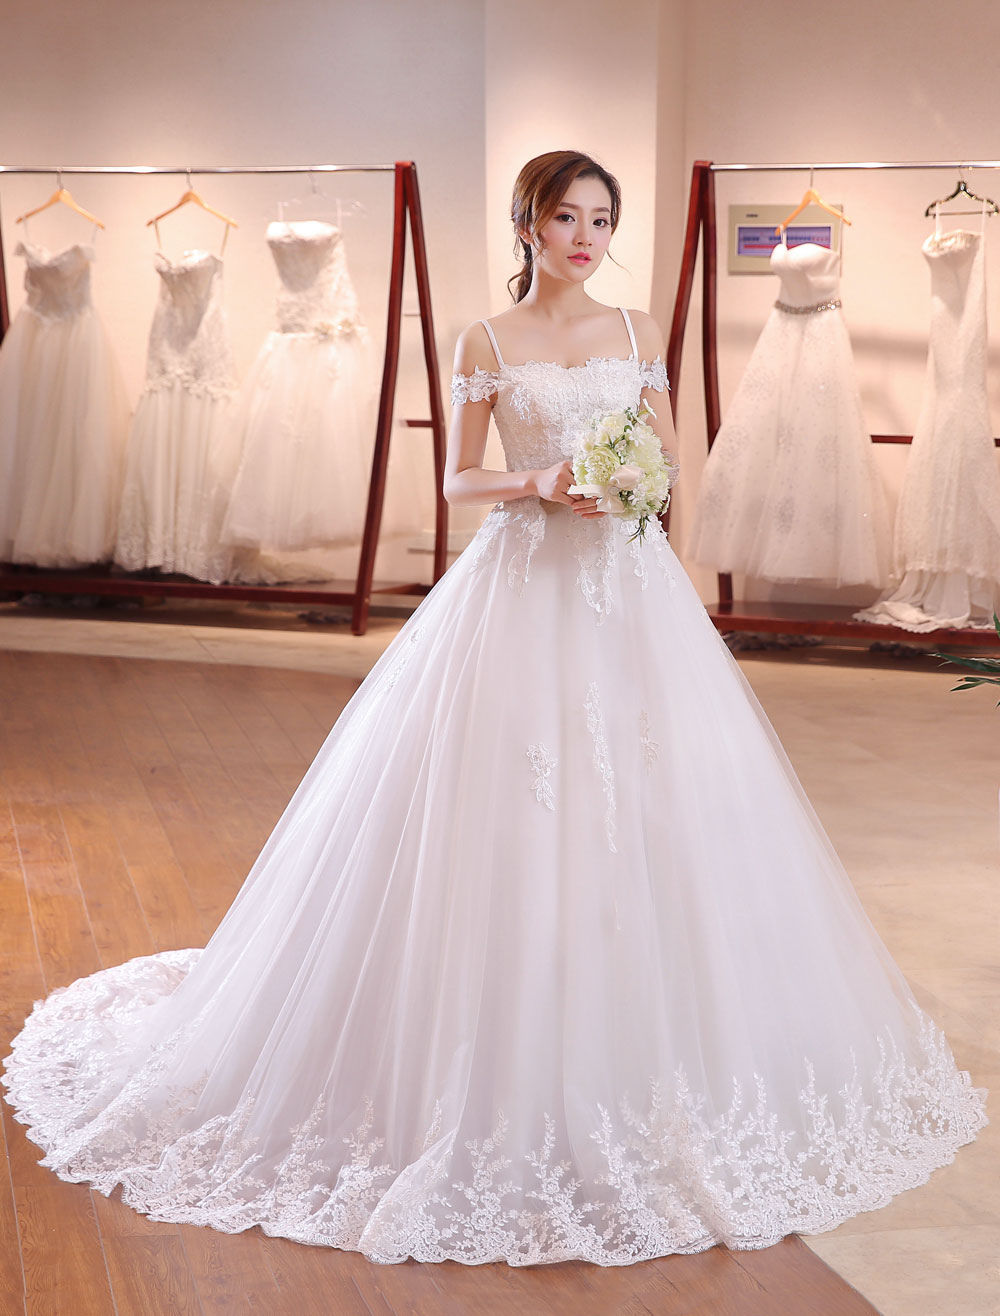 Princess Wedding Dresses Off The Shoulder Bridal Dress Straps Lace Applique Beading Wedding Gown With Long Train photo